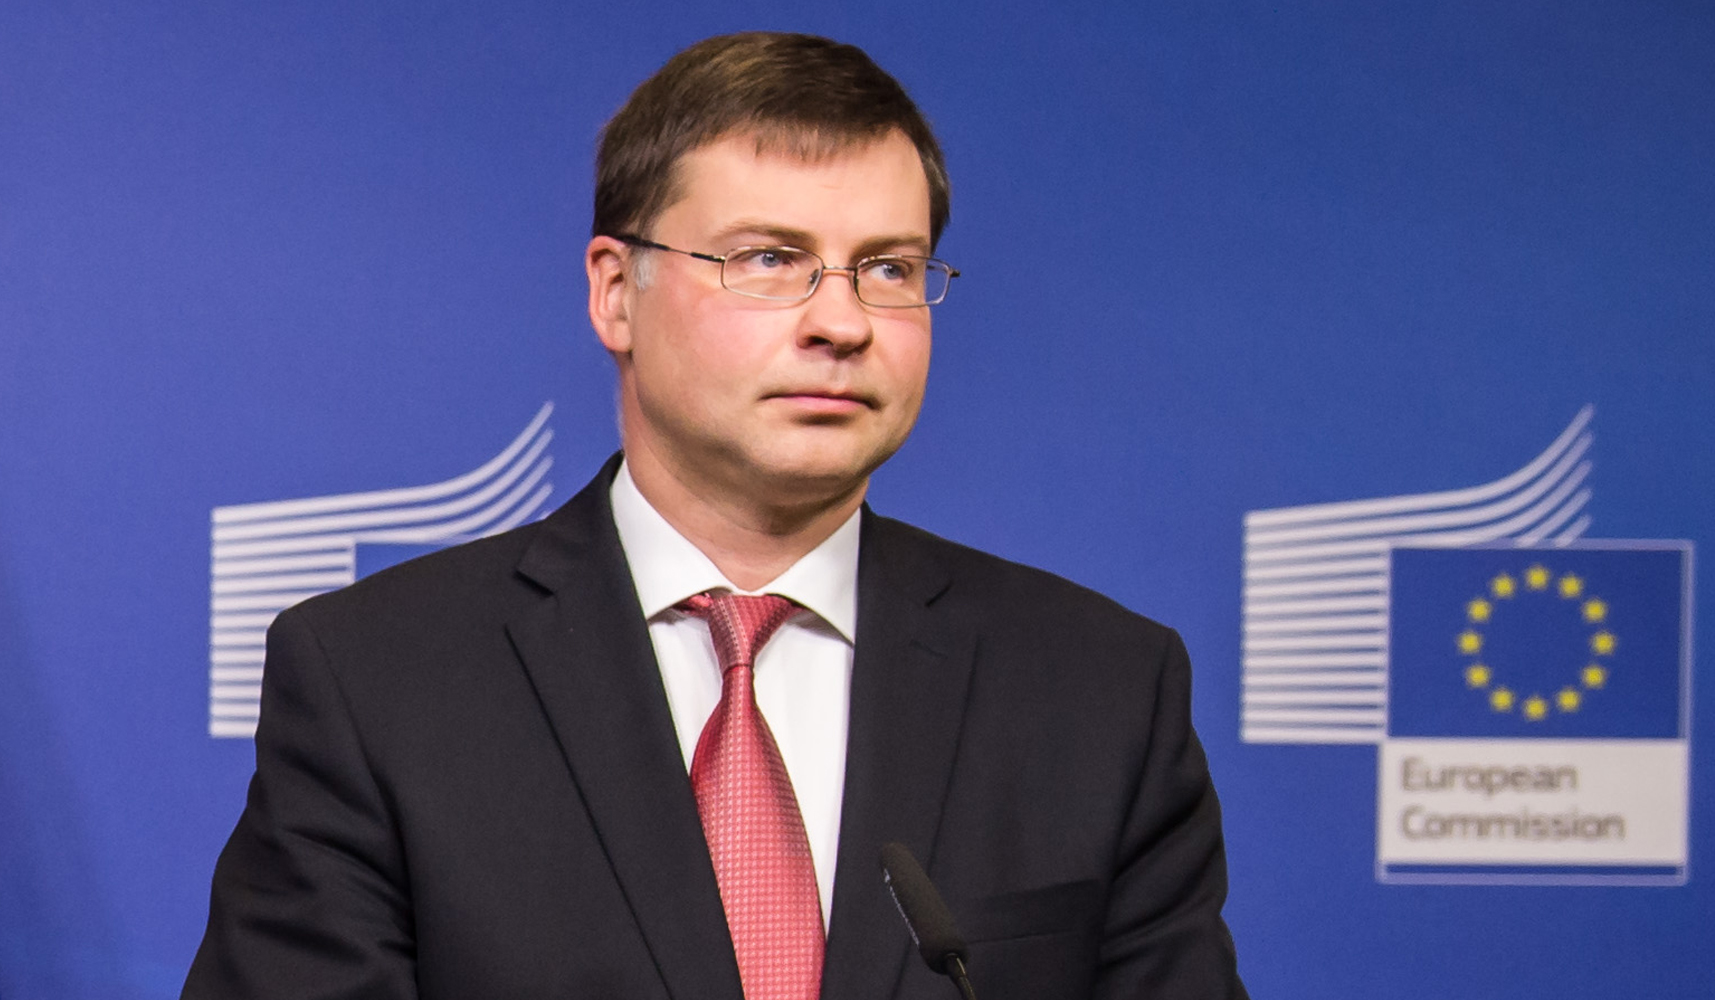 Bulgaria: Use of force must be proportional, says Dombrovskis